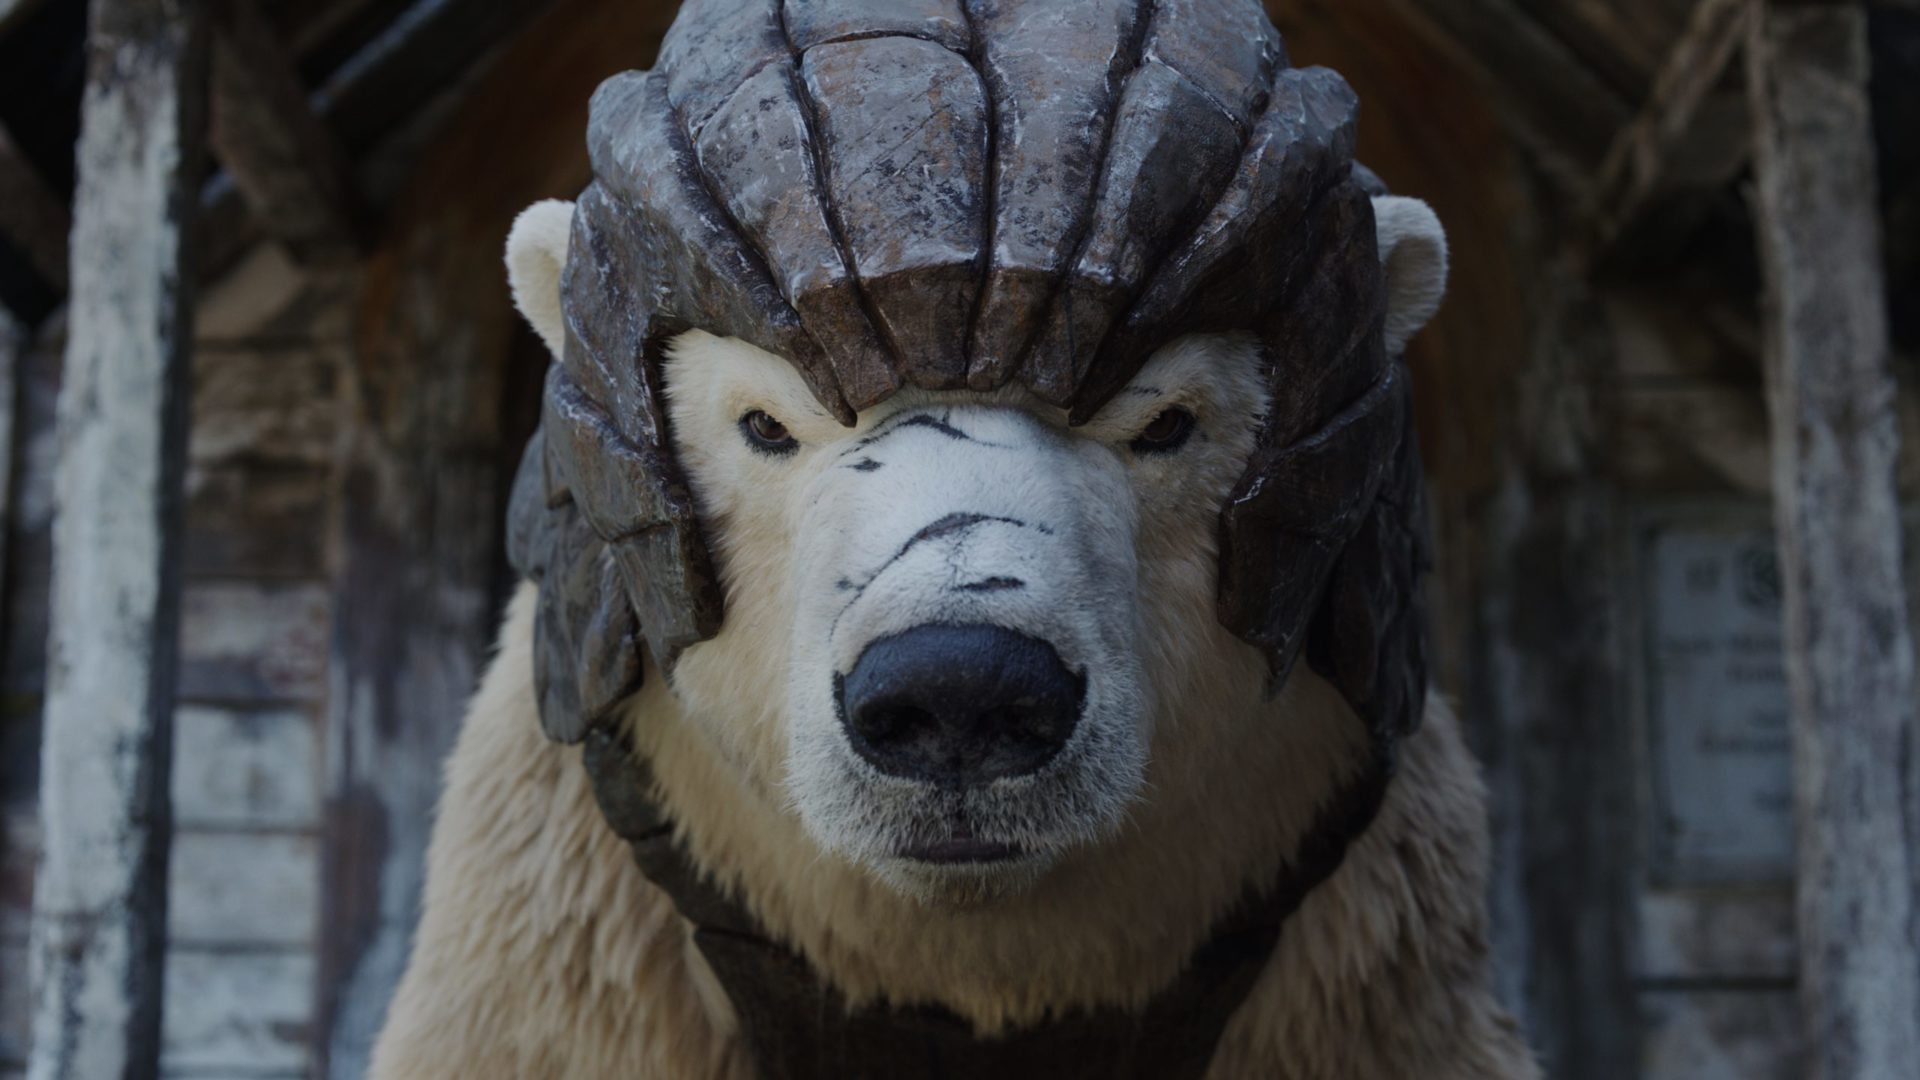 What's streaming - HBO - His Dark Materials